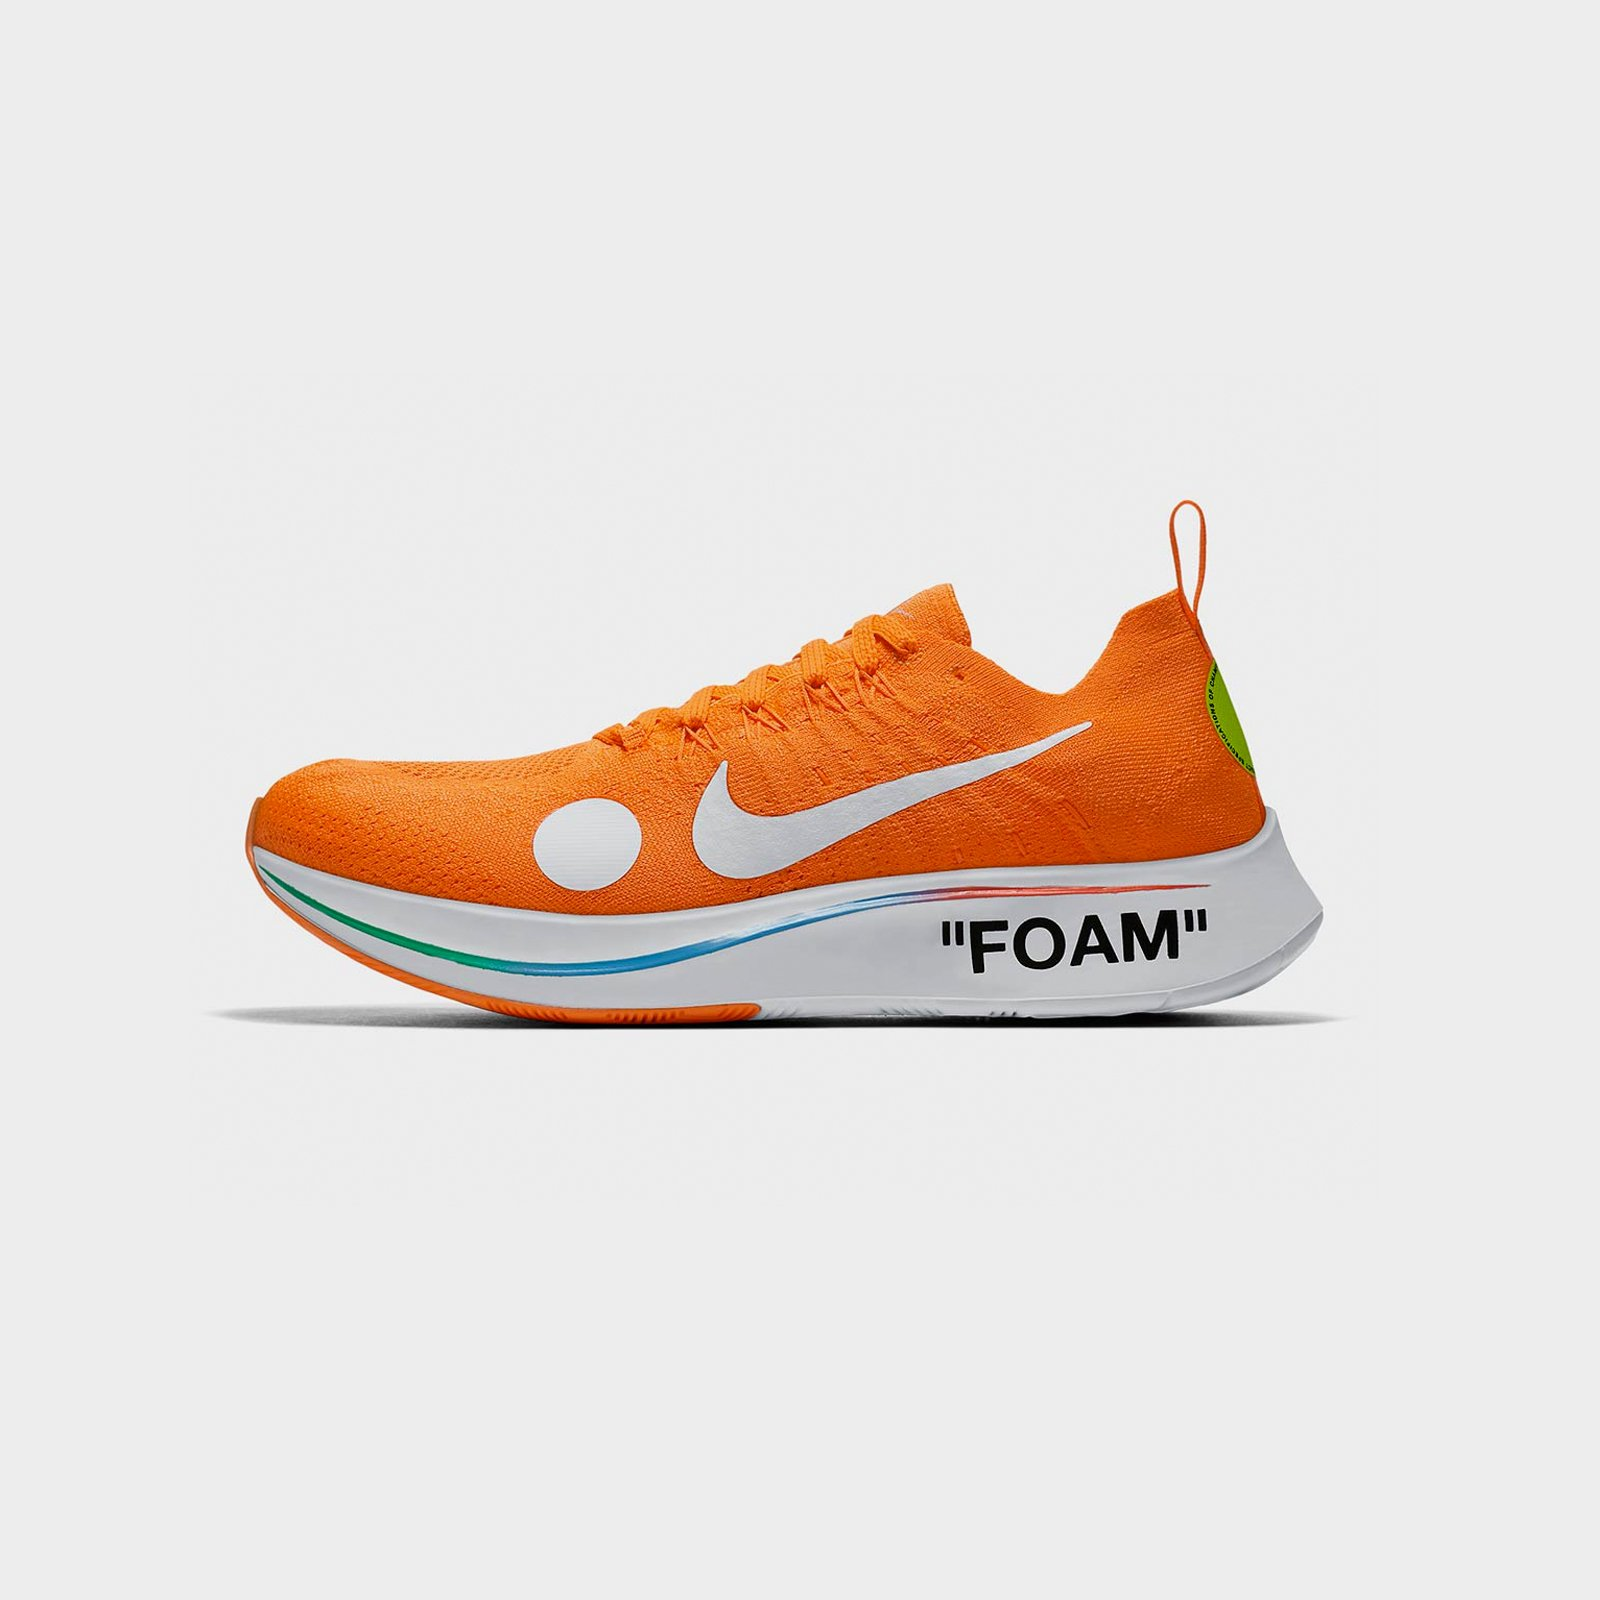 release info on sale order Nike Zoom Fly Mercurial Flyknit / Off-White - Ao2115-800 ...